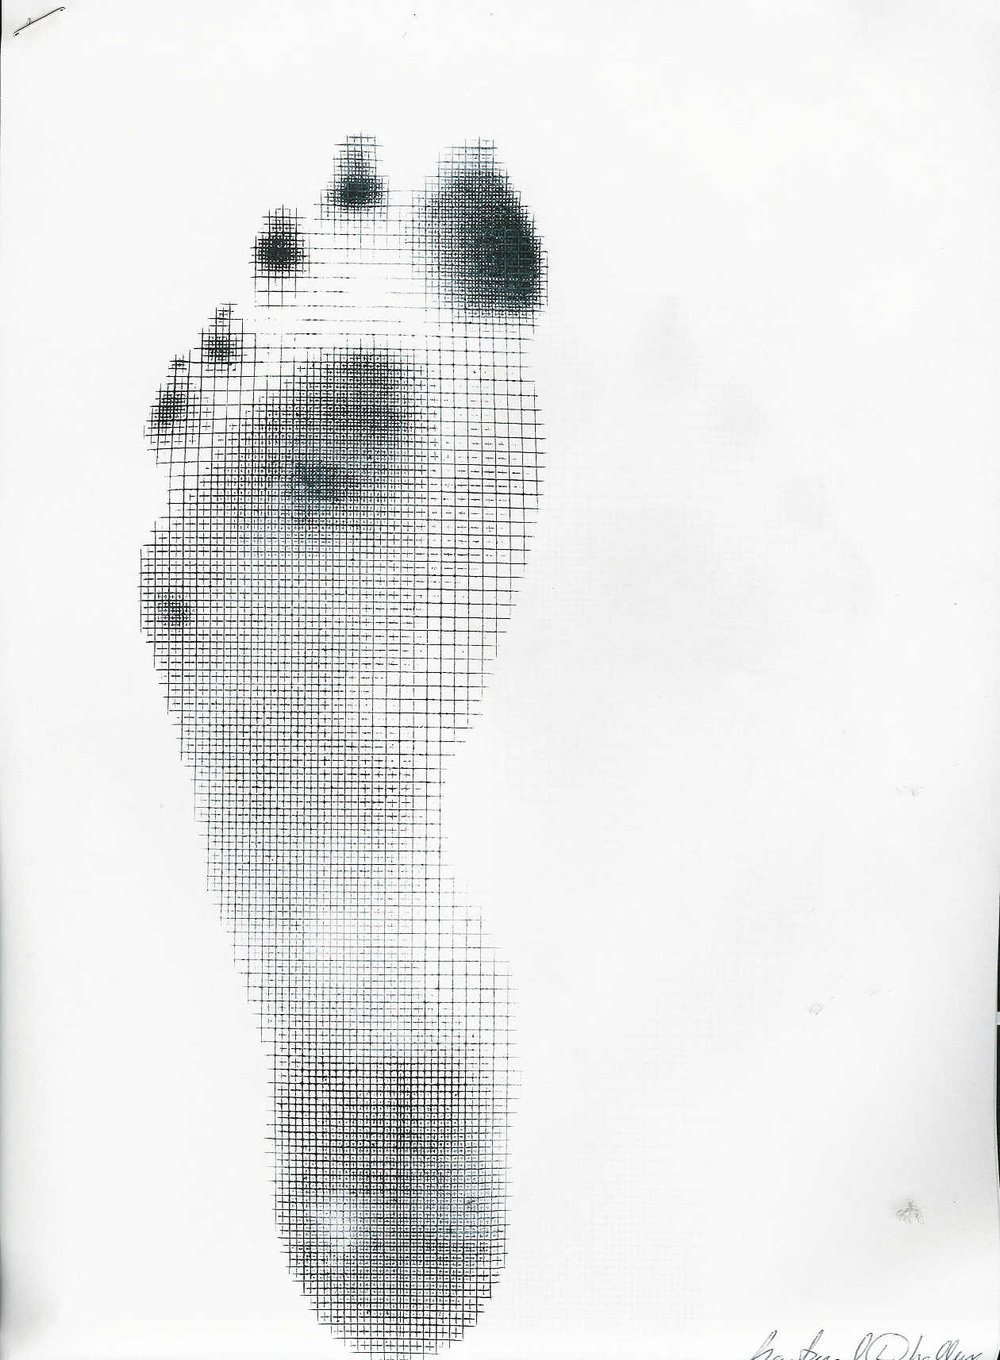 So what can you tell us about this foot?    Hmmm. Pedograph again….You guys must think this is important, eh? You bet!  The best $150 dollars you will spend and one of the best education (and sales) tool you can buy.   So, back to the foot. Lets divide it into 3 sections; the rearfoot, the midfoot and the forefoot.   What do we see in the rearfoot? plenty of pronation, that's for sure. How do you know? Look at the width of the print and the elongation of the heel print medially; ideally it is shaped like a teardrop. You would expect to see the calcaneus tipped into valgus (eversion) wile standing. What else? A heavy heel strike; look at all that ink!  Next, the midfoot; Lots of printing here = lots of midfoot pronation. Look at how the 2nd and 3rd cunieforms and cuboid print. This much ink under the cuboid means that the peroneus is having a hard time everting and assisting in supination  of the foot.   The forefoot? We see ink under met heads 2, 3 and 5, but not under 1.Looks like they can't get the head of the 1st metatarsal down. This would lead us to believe they have an uncompensated forefoot varus (forefoot inverted with respect to the rearfoot). What about the toes? looks like overactivity of the long flexors to us, including the flexor hallucis longus (the brevis would only print more proximally; see our post here). This activity is probably to try desperately to stabilize the obviously unstable foot.  Where do you begin? Lots of diligent work on the clients behalf, maybe consider an orthotic that you can slowly pull the correction out of as they improve, to give them mechanics they don't have. How about the tripod? Increase mobility of that 1st ray and get the 1st met head down and help to keep it there. Mobilization/manipulation, toe waving, tripod standing are a good start. Next tone down some of that long flexor tone. How about some more tripod standing, toes up walking and some shuffle walks. The intrinsics are next, and so on.   Yes, you should own a pedograph.  Need one? One of our friends (Another Shawn) can get you one. contact him at:  303 567 2271   You be able to interpret a pedograph. It provides a window to the gait cycle unlike any you have seen. Need help? Search our blog here with hundreds of examples, go to our Youtube channel and watch some of our great, free videos.   Thirsty for more? We have THE ONLY book published (as far as we know) on them exclusively and you can get it by  clicking here . We are told by our publisher that it is being converted to e-book format, but have not been given a conversion date.     Ivo and Shawn. Articulate. In your face. Pushing your limits daily. Changing the way the world looks at the feet and gait.       all material copyright 2012 The Homunculus Group/The Gait Guys. All rights reserved. If you use our stuff without asking us, we WILL find you and and send Toelio to deal with you.